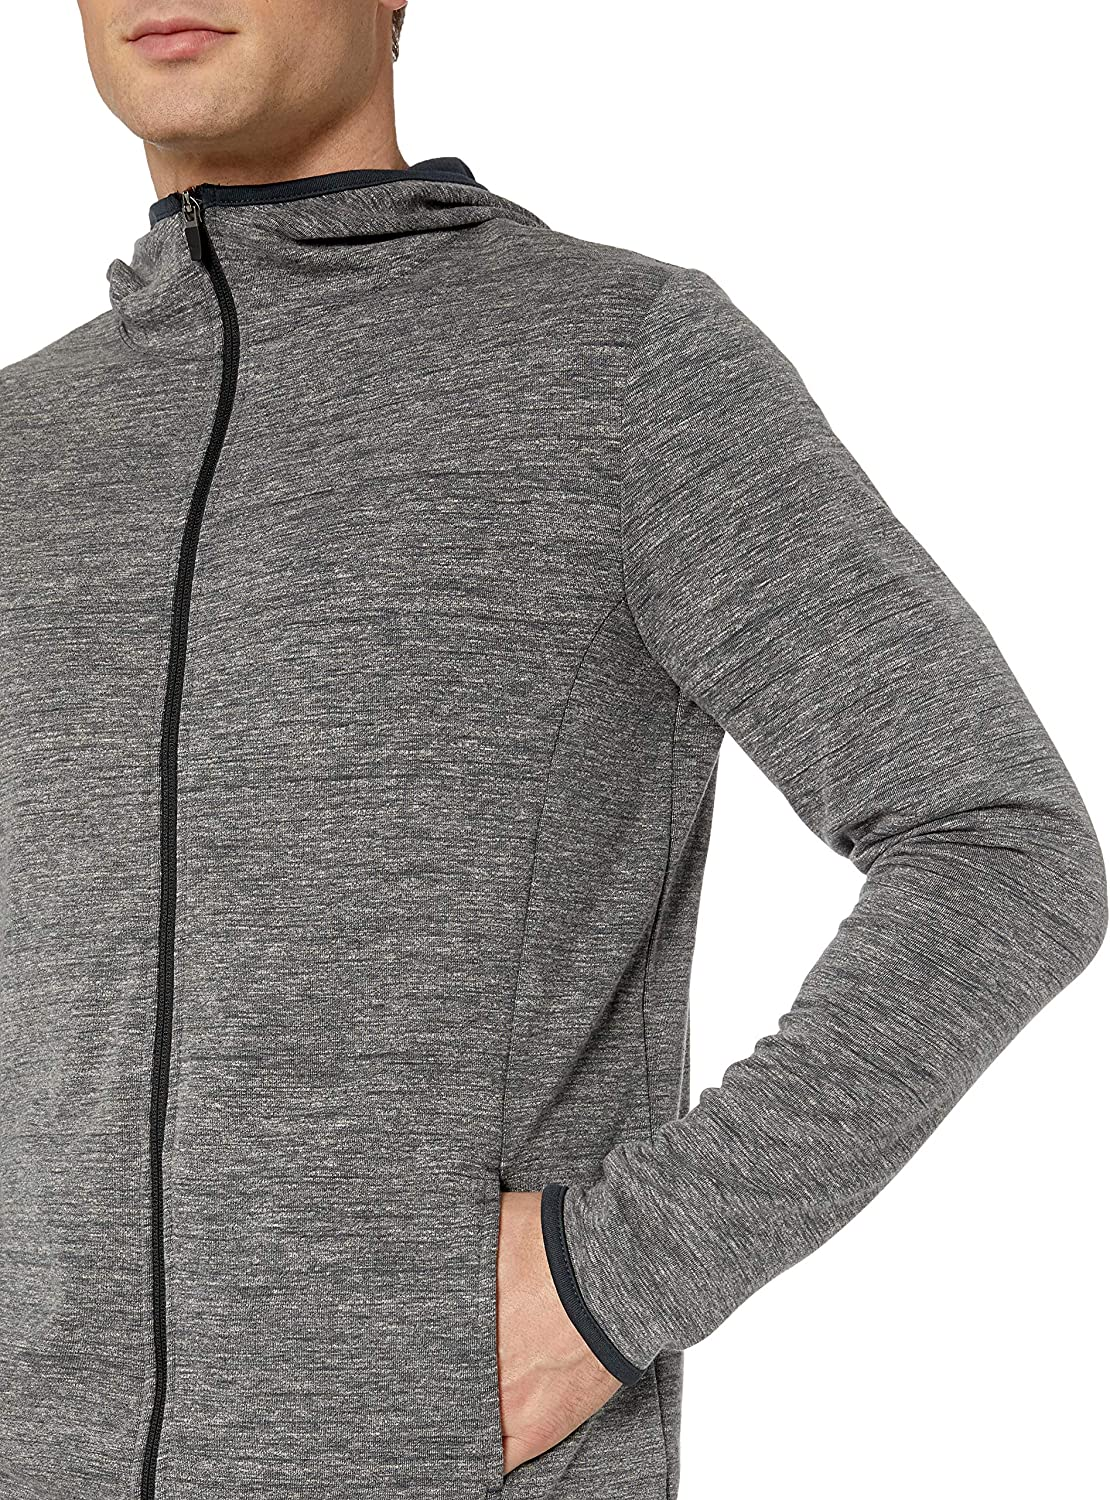 Essentials Mens Performance Full-Zip Hoodie